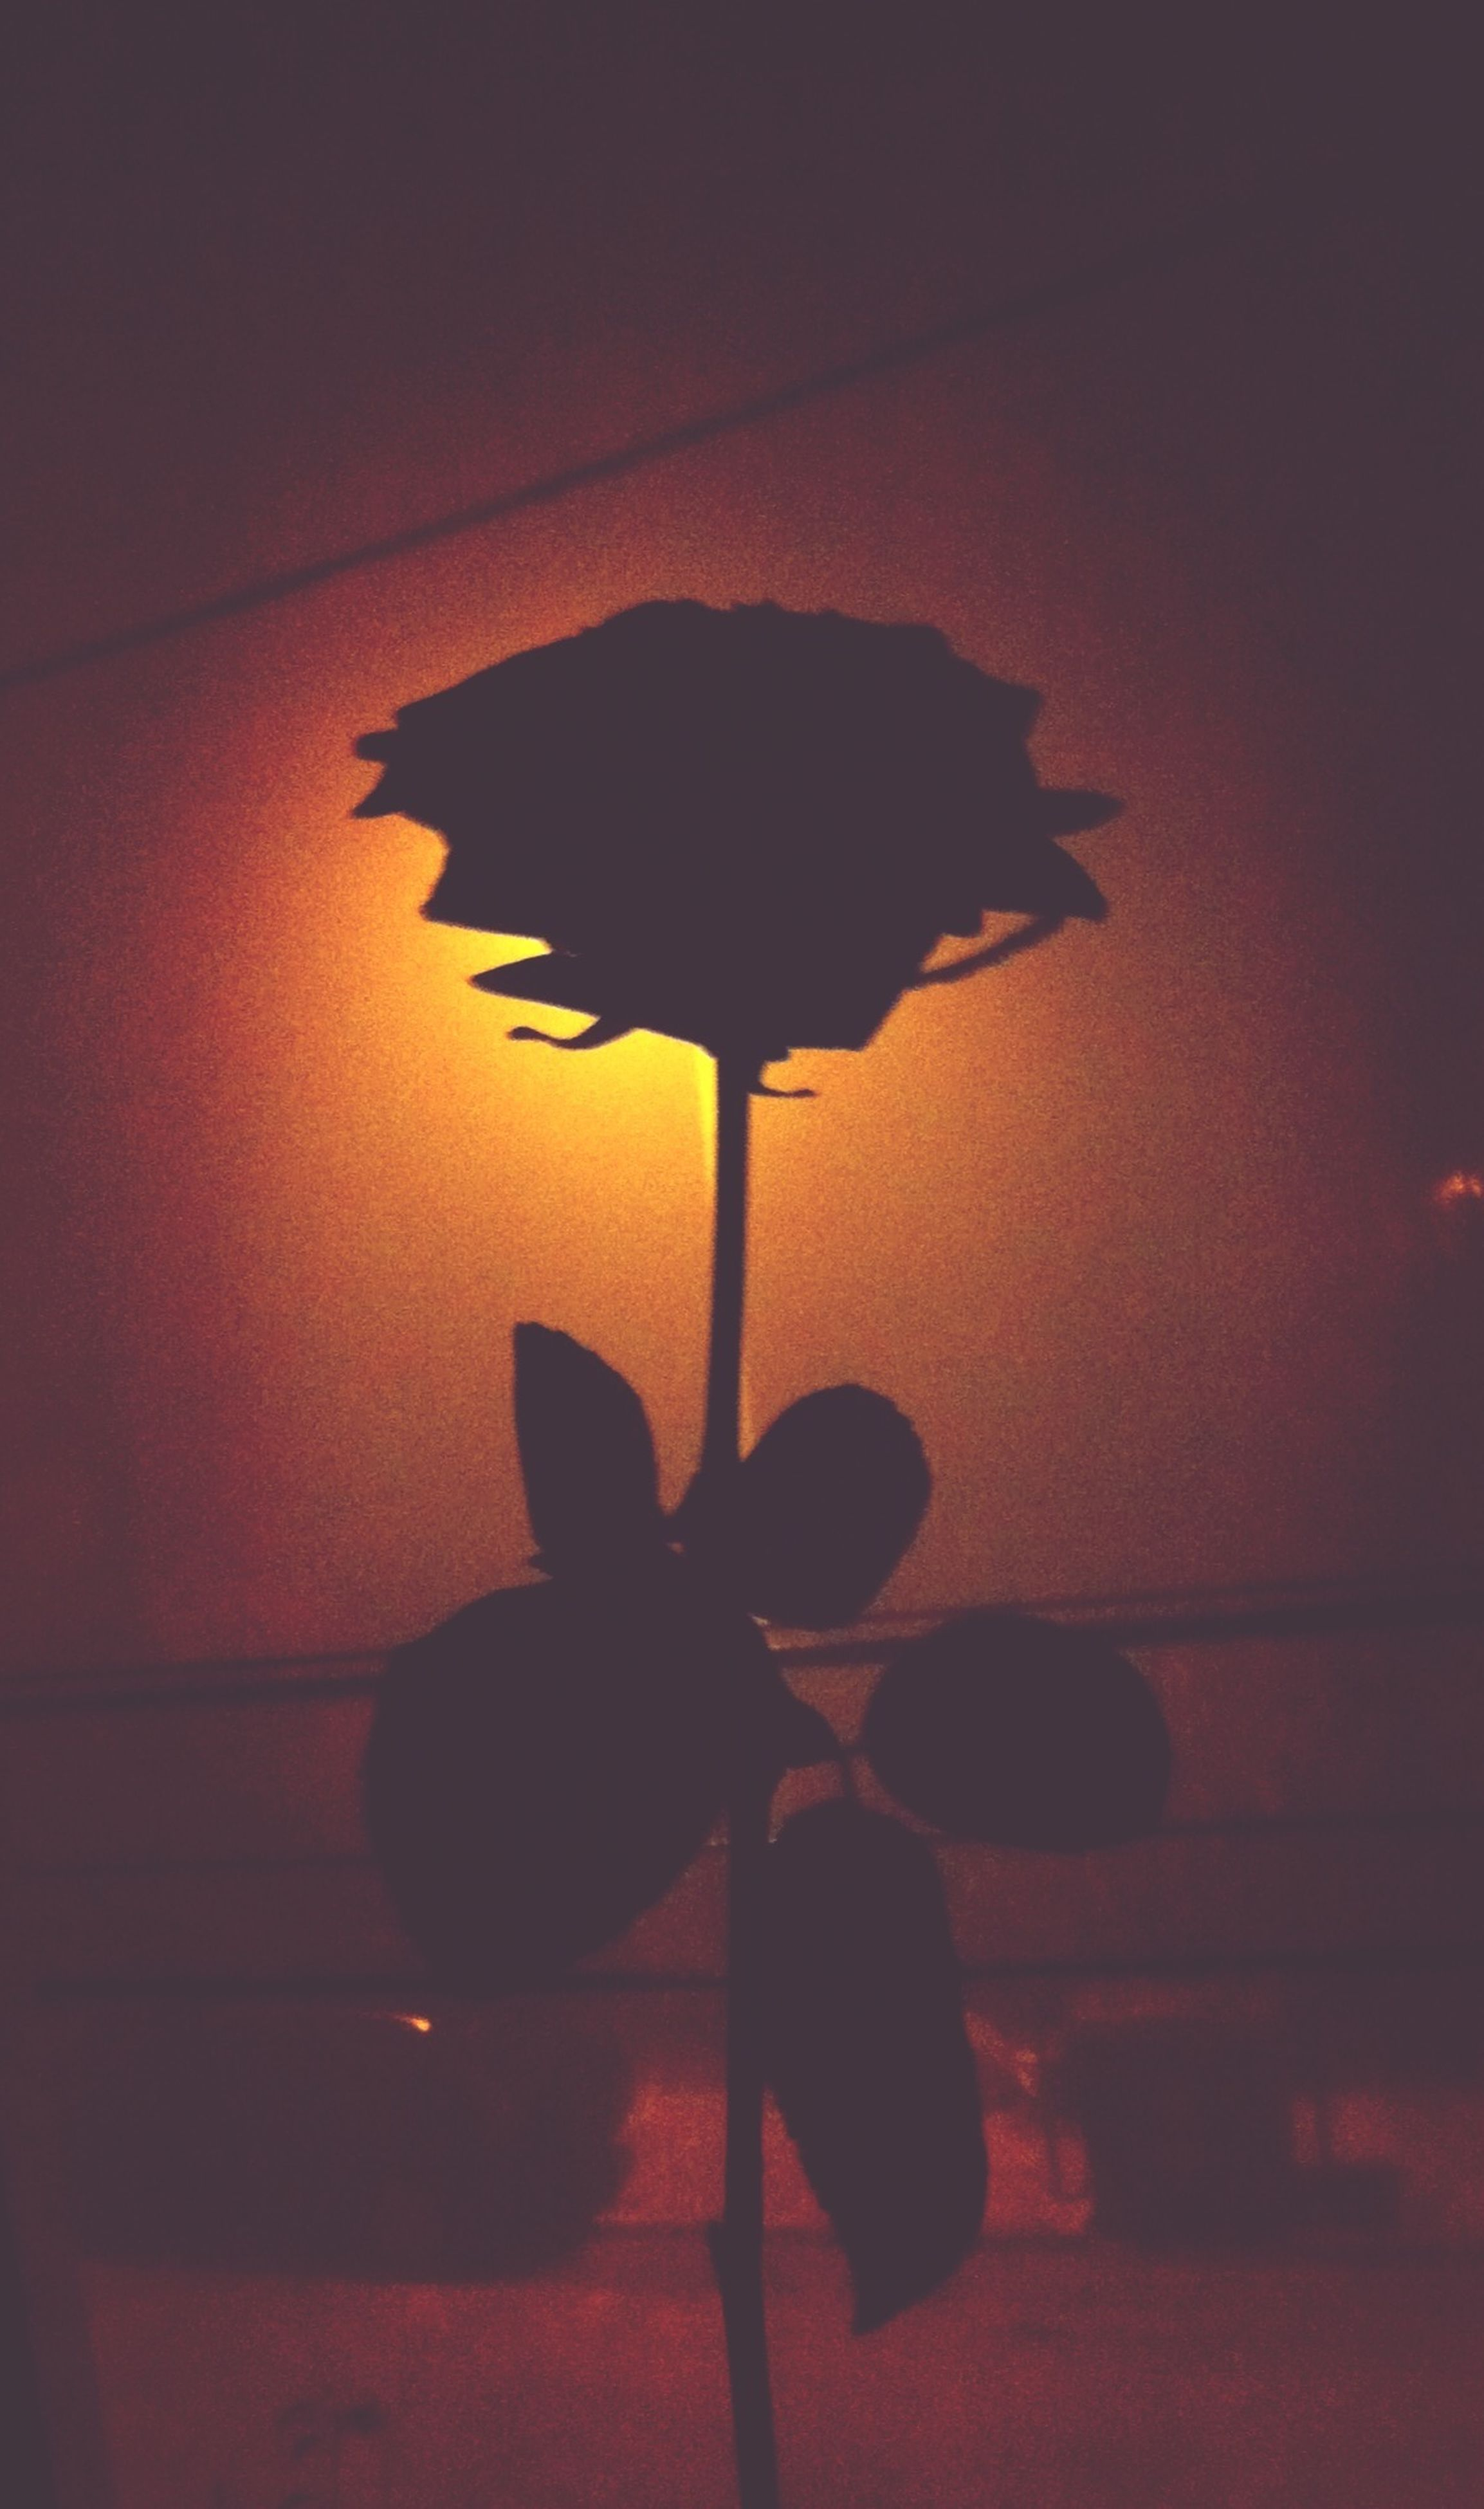 indoors, wall - building feature, home interior, shadow, close-up, silhouette, wall, flower, illuminated, lighting equipment, dark, decoration, no people, hanging, copy space, light - natural phenomenon, orange color, electric lamp, darkroom, table